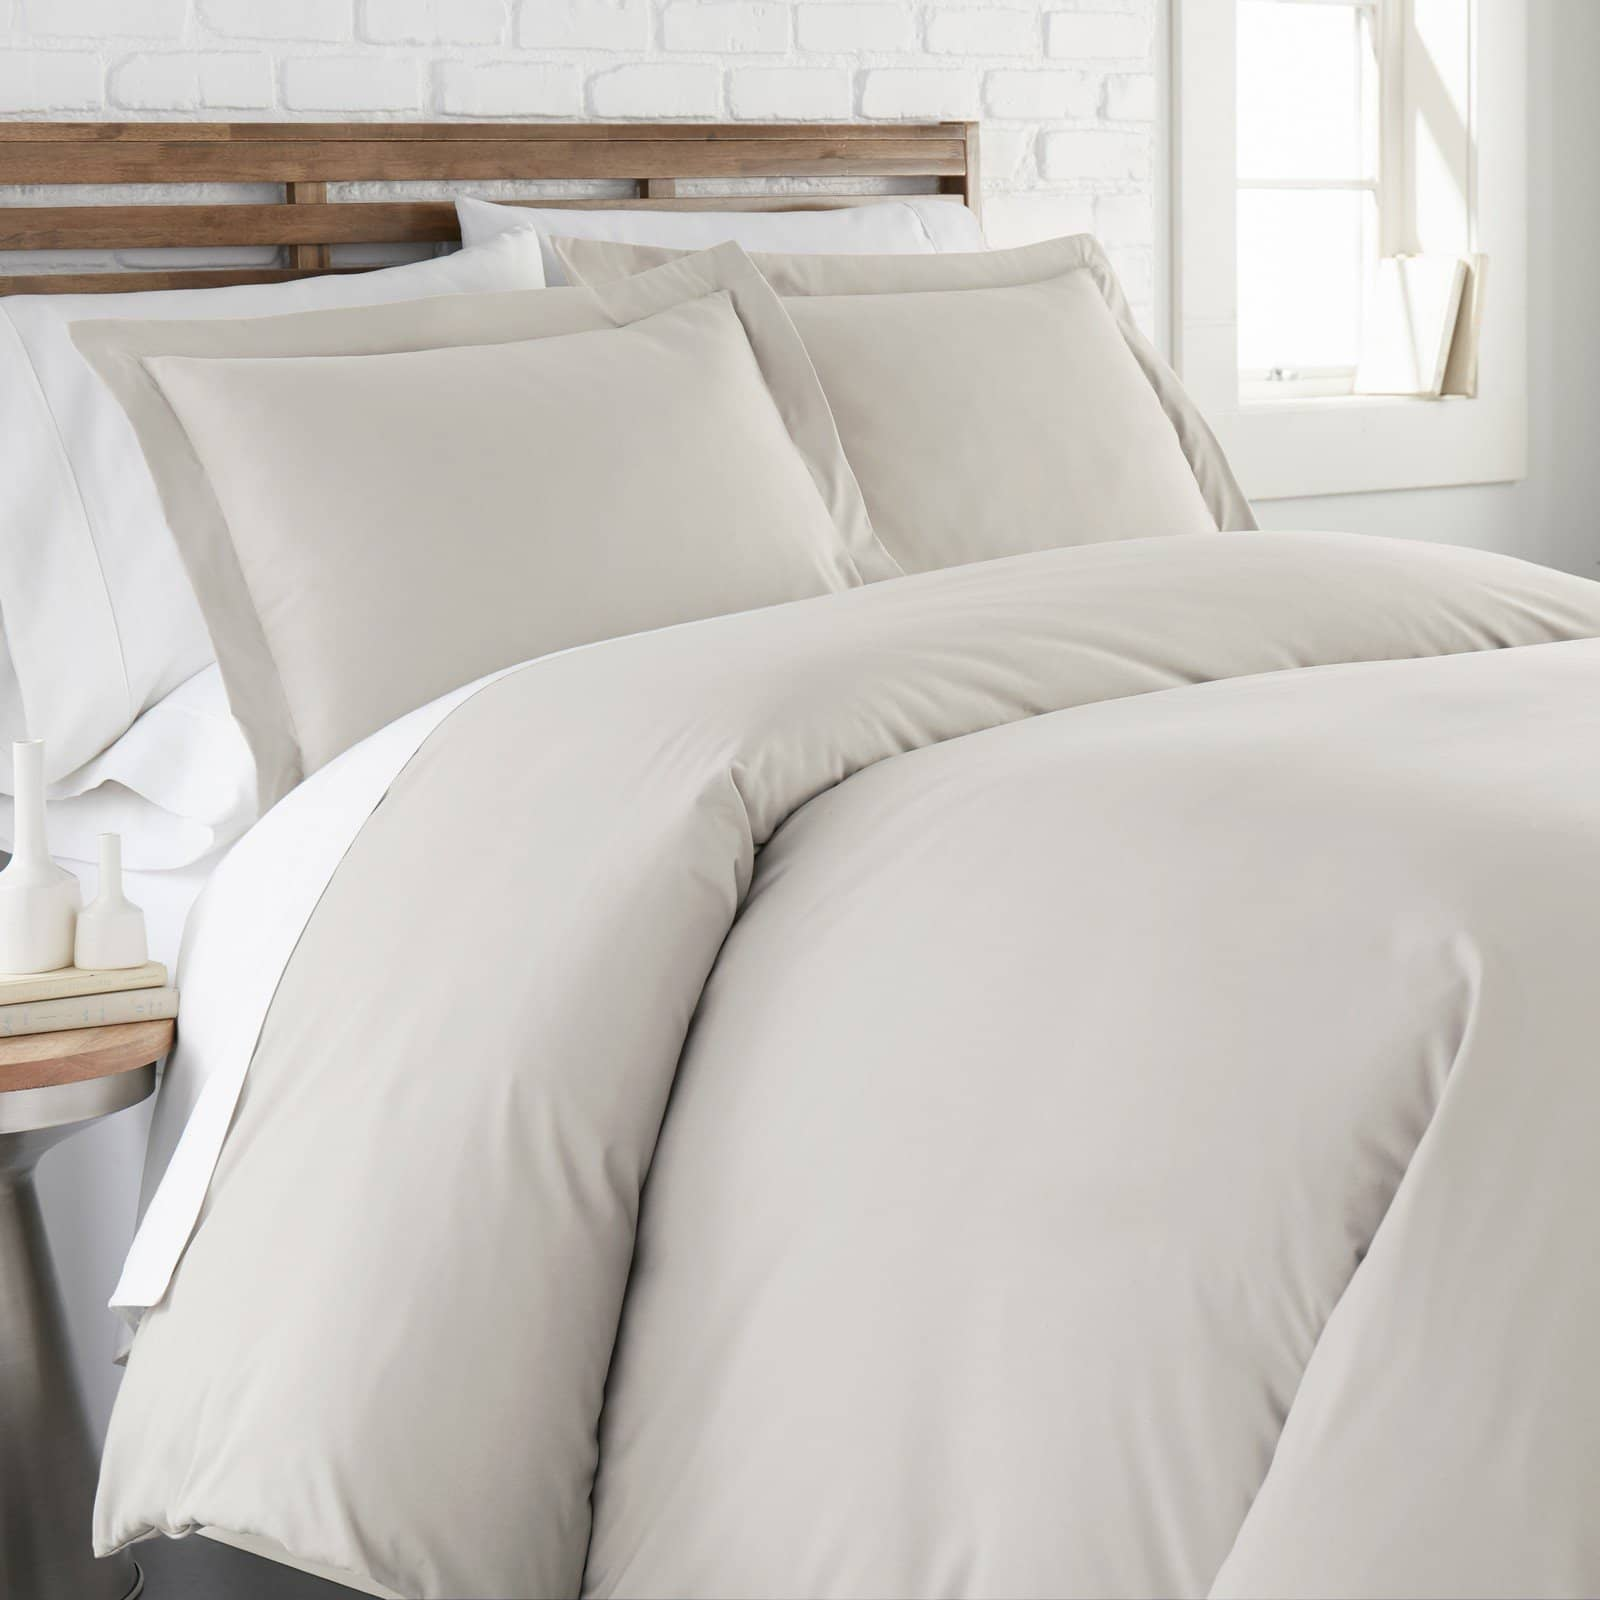 Southshore Essentials Duvet Cover Set